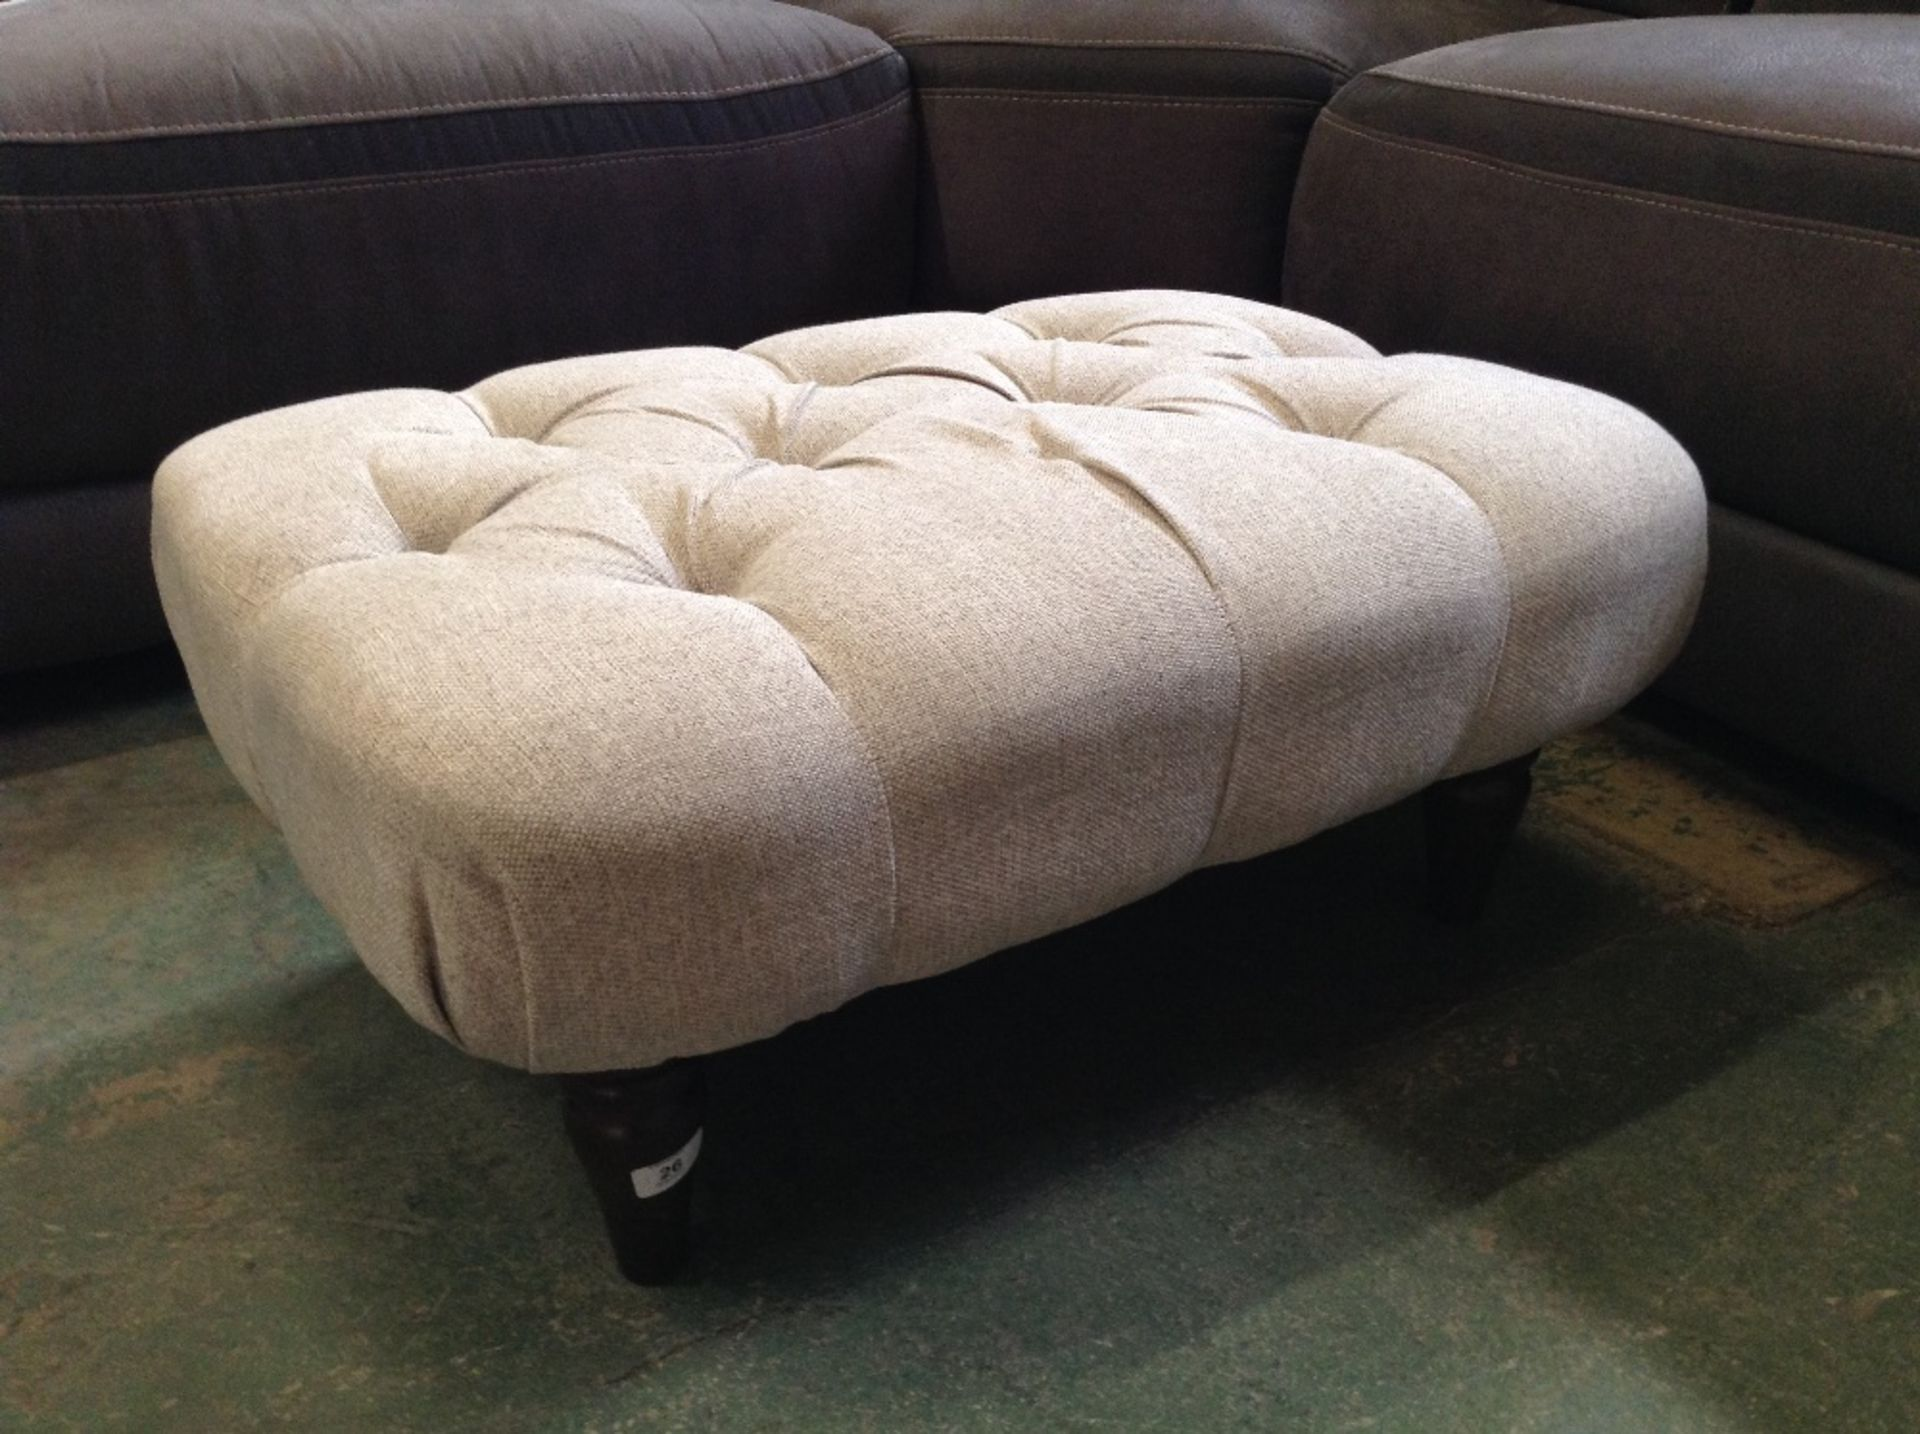 Lotto 26 - BISCUIT PATTERNED FOOTSTOOL (MISSING BUTTON ON TOP